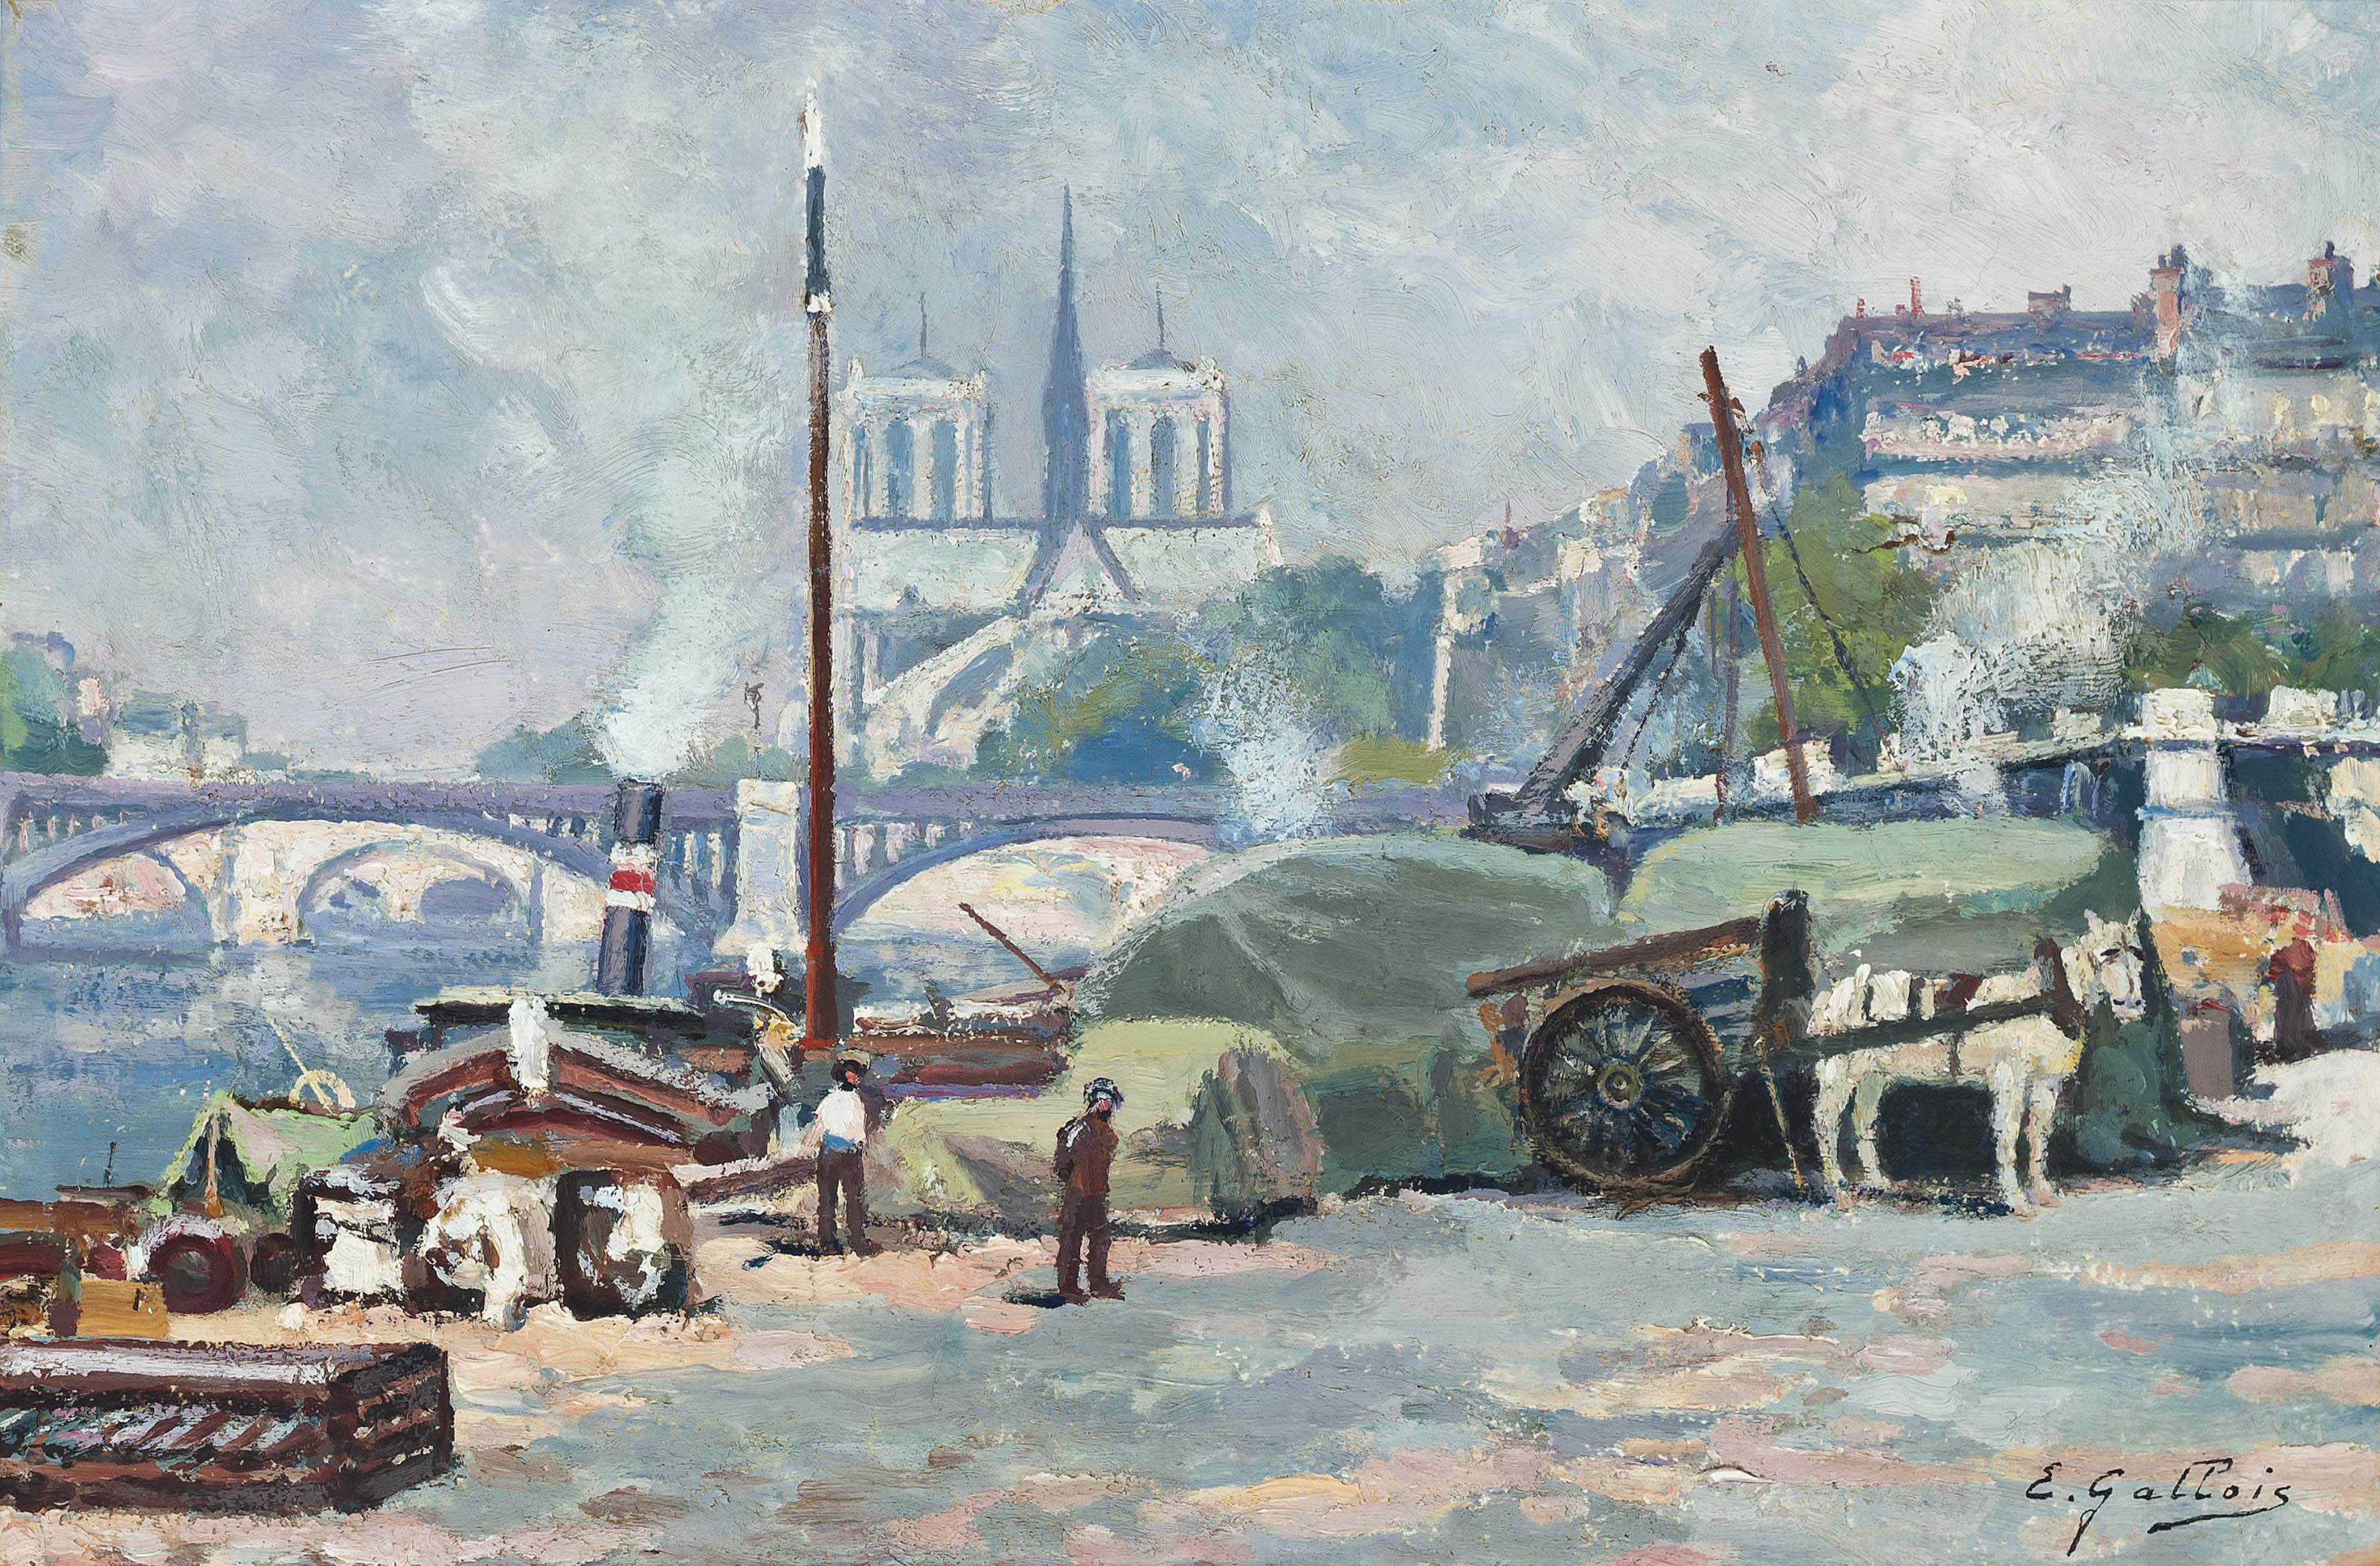 Loading steamers on the Seine, Notre Dame beyond